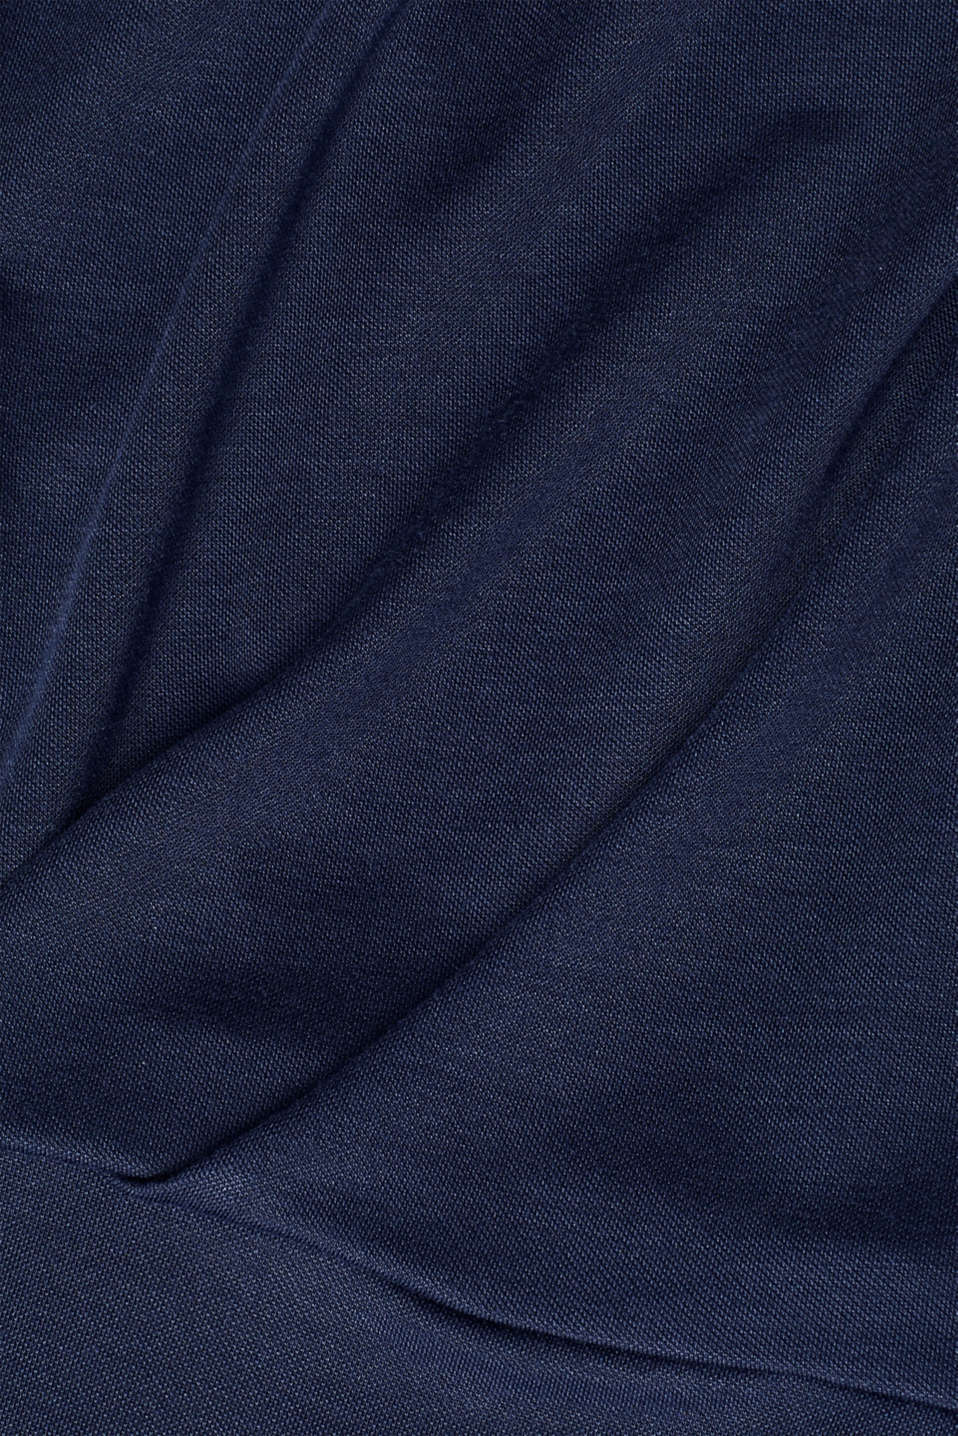 Dresses knitted, NAVY, detail image number 4